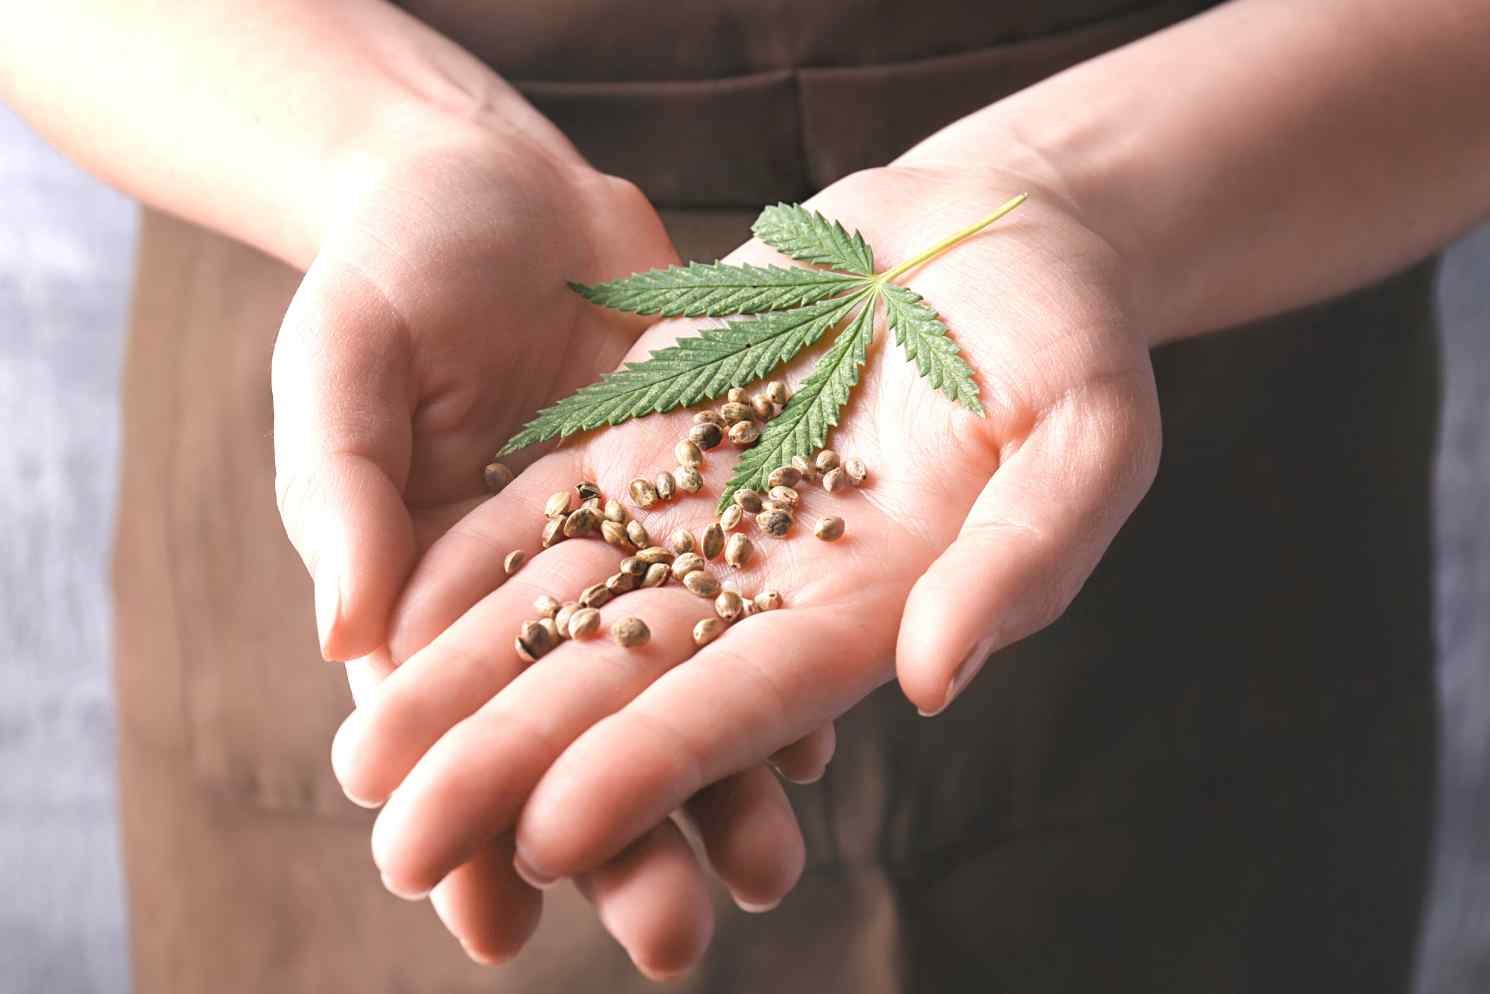 CBD for nerve pain, cannabis leaf in hand with hemp seeds, closeup